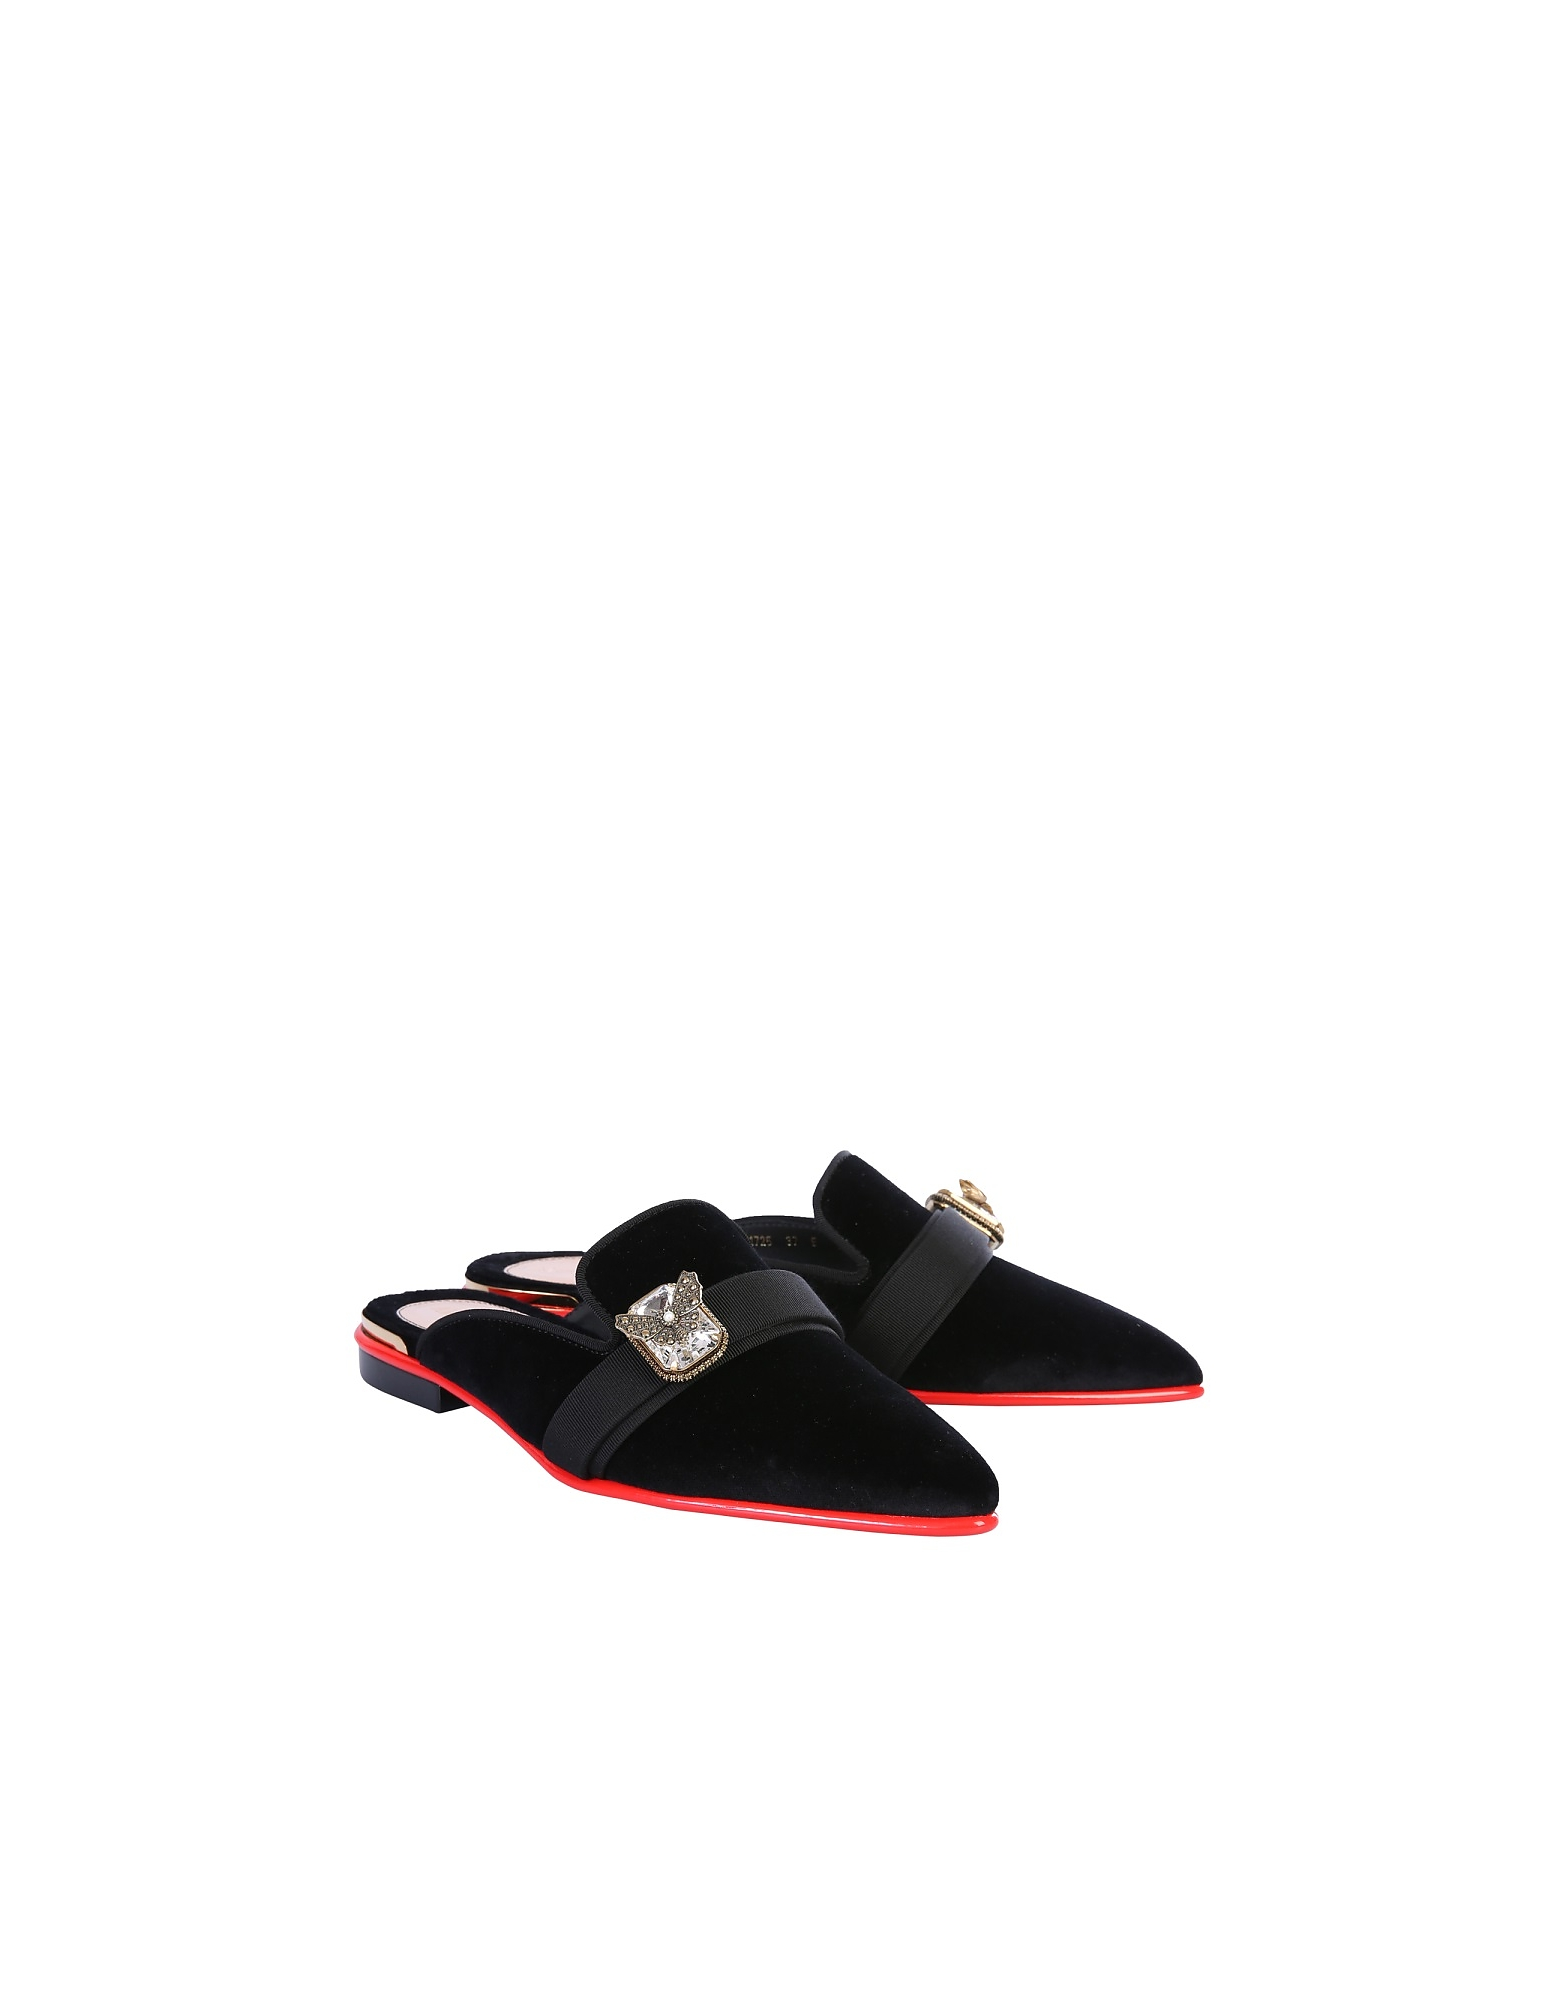 Alexander McQueen Designer Shoes, Black Velvet Jewel Mules